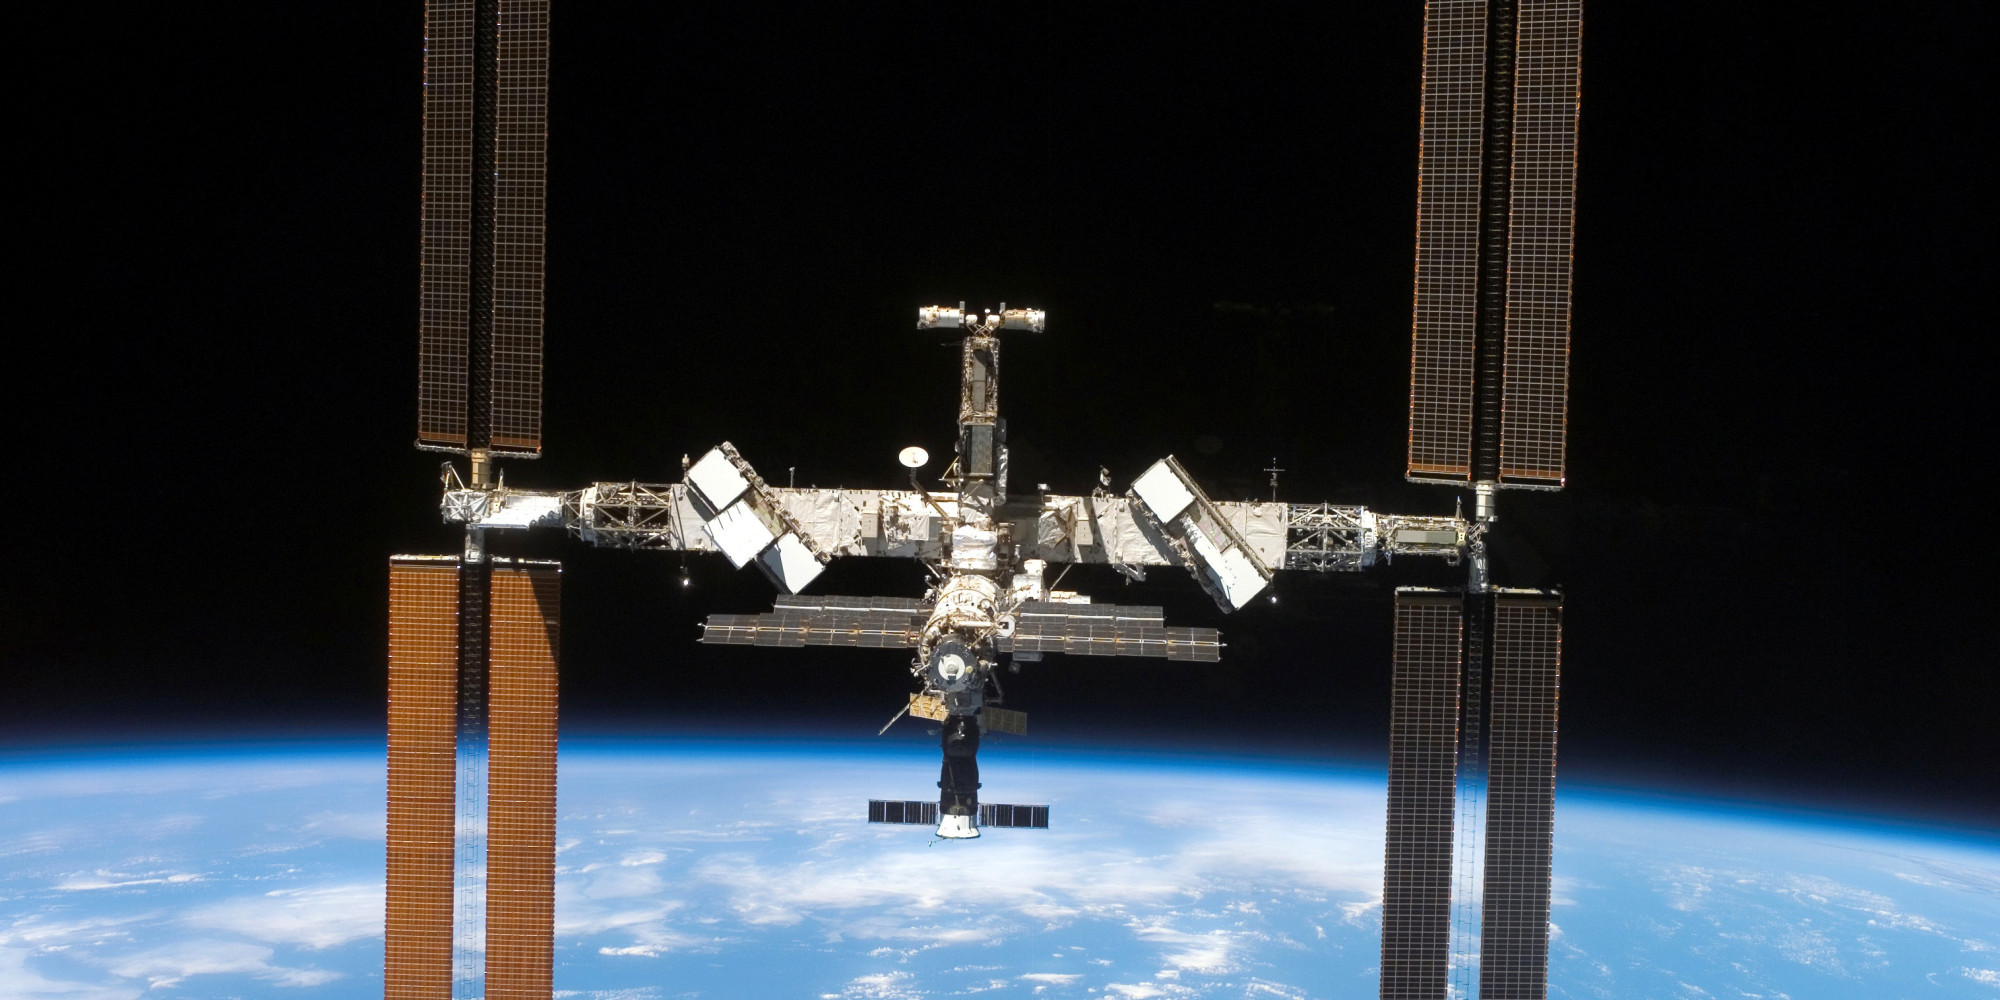 US-Russian Relations and the International Space Station ...